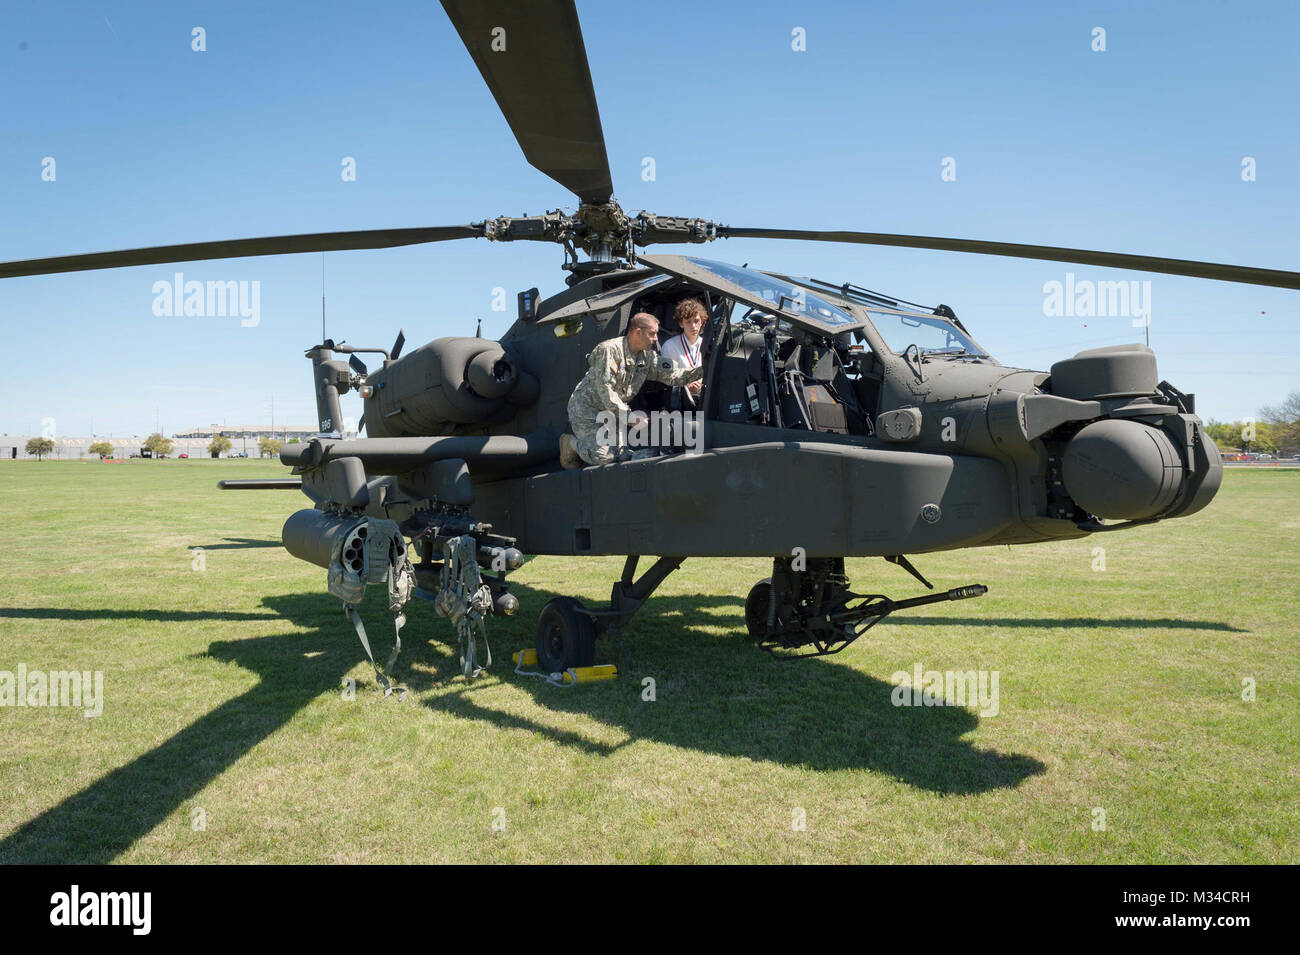 Lt. Col. Chris Miletello, Airspace Manager with the 36th Infantry Division, Texas Army National Guard, shows Ian - Stock Image